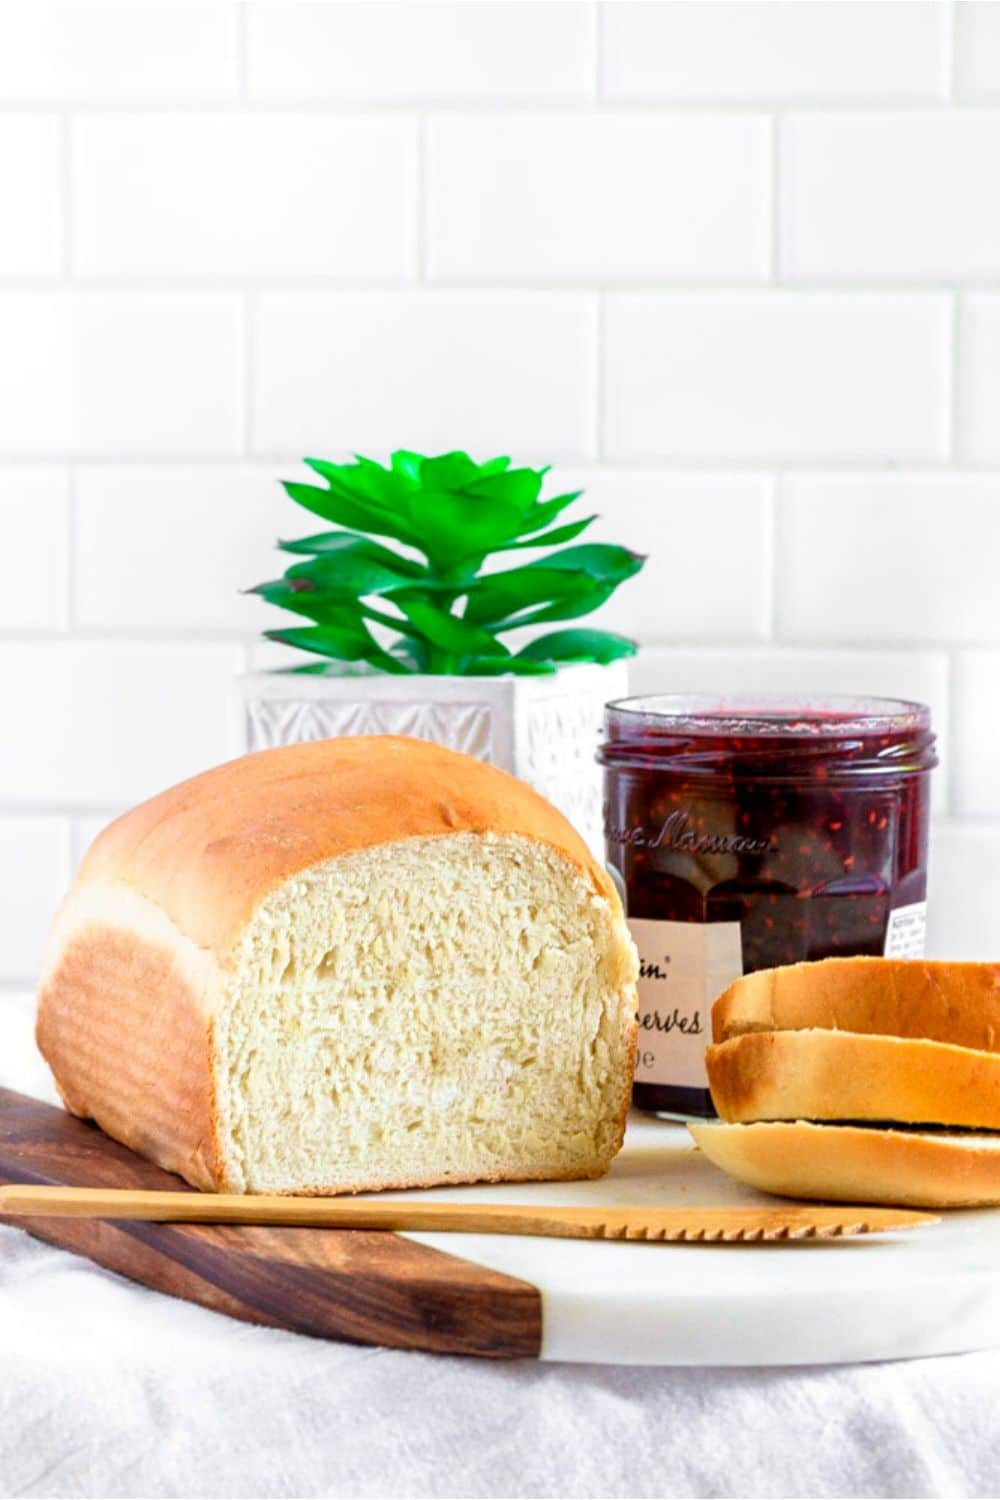 Fresh loaf of homemade white bread on a marble-and-teak board next to a jar of preserves.